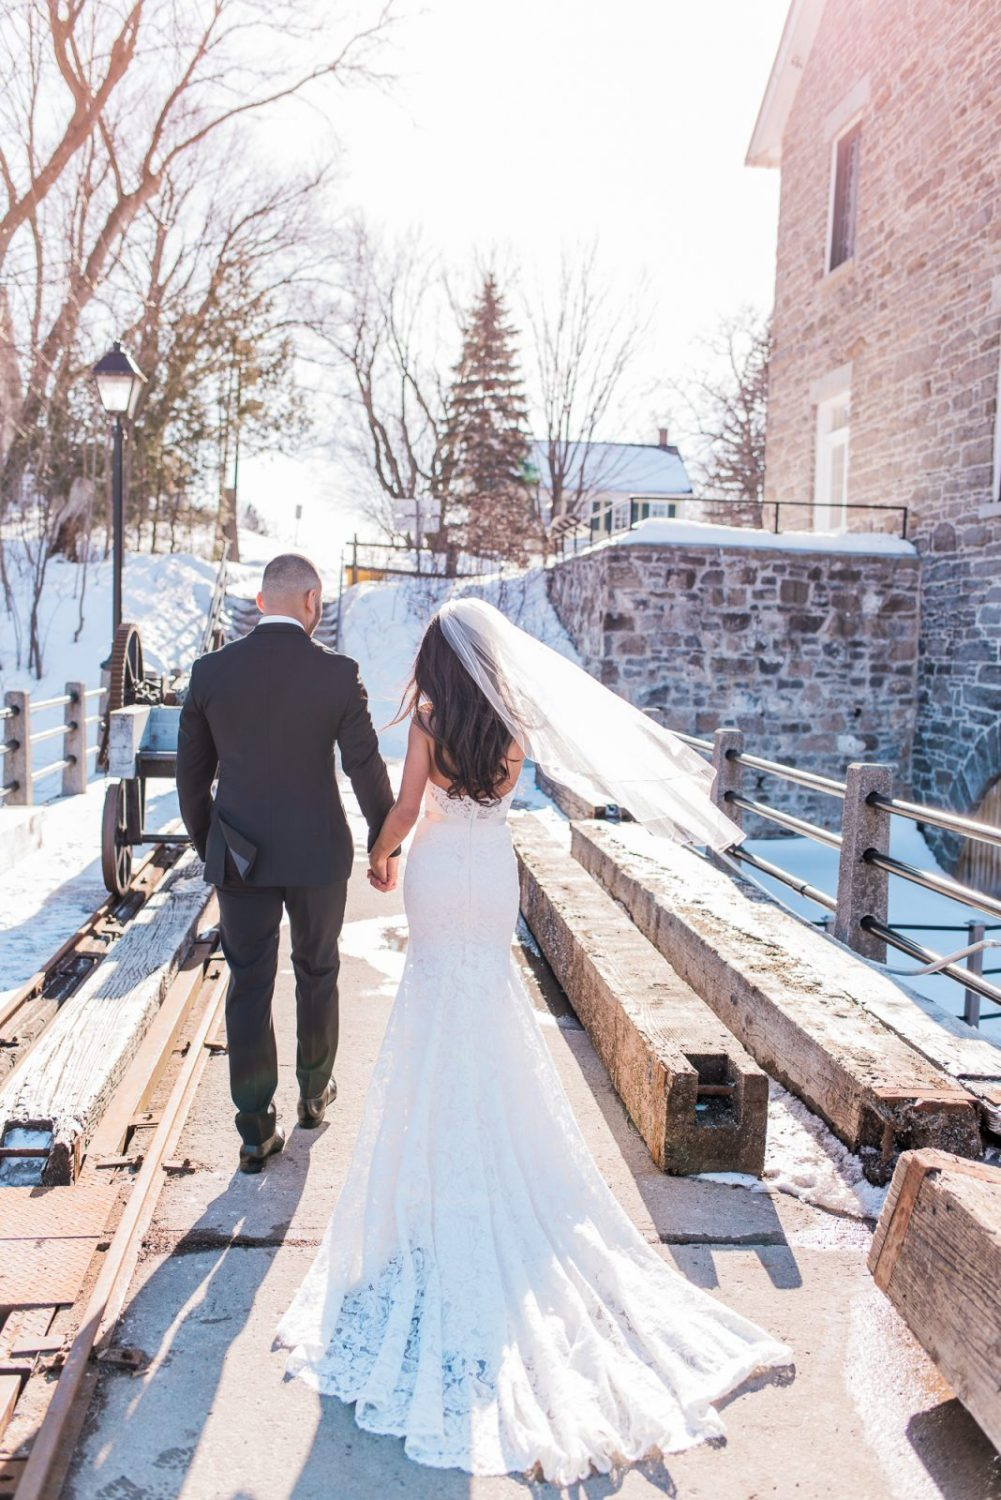 Lebanese wedding Ottawa - Watsons Mill, Winter Wedding - Photography by Emma